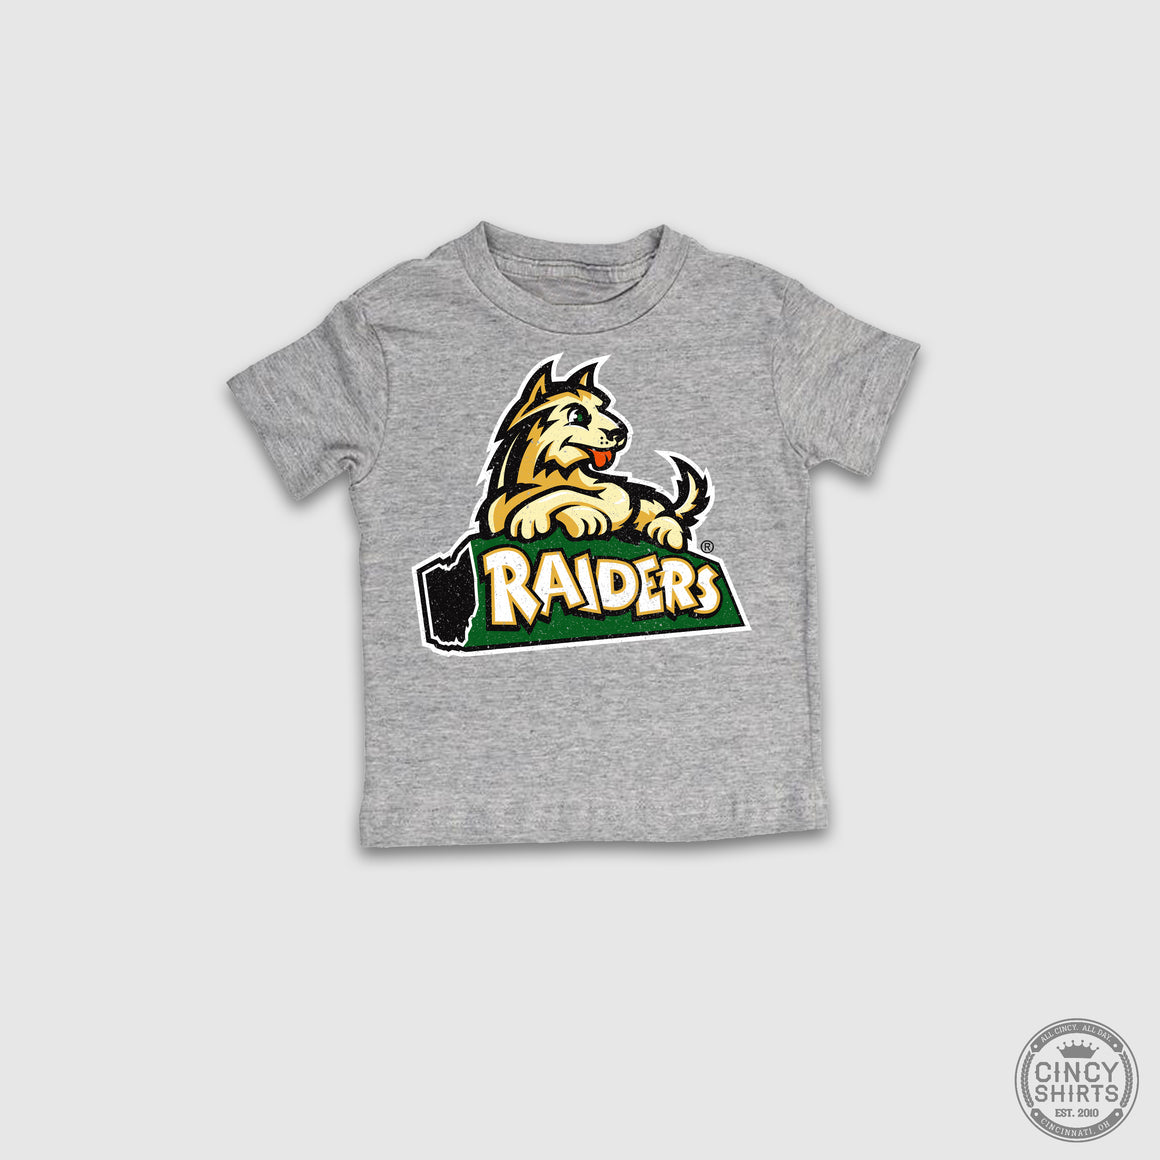 Wright State Raiders - Youth Sizes - Cincy Shirts